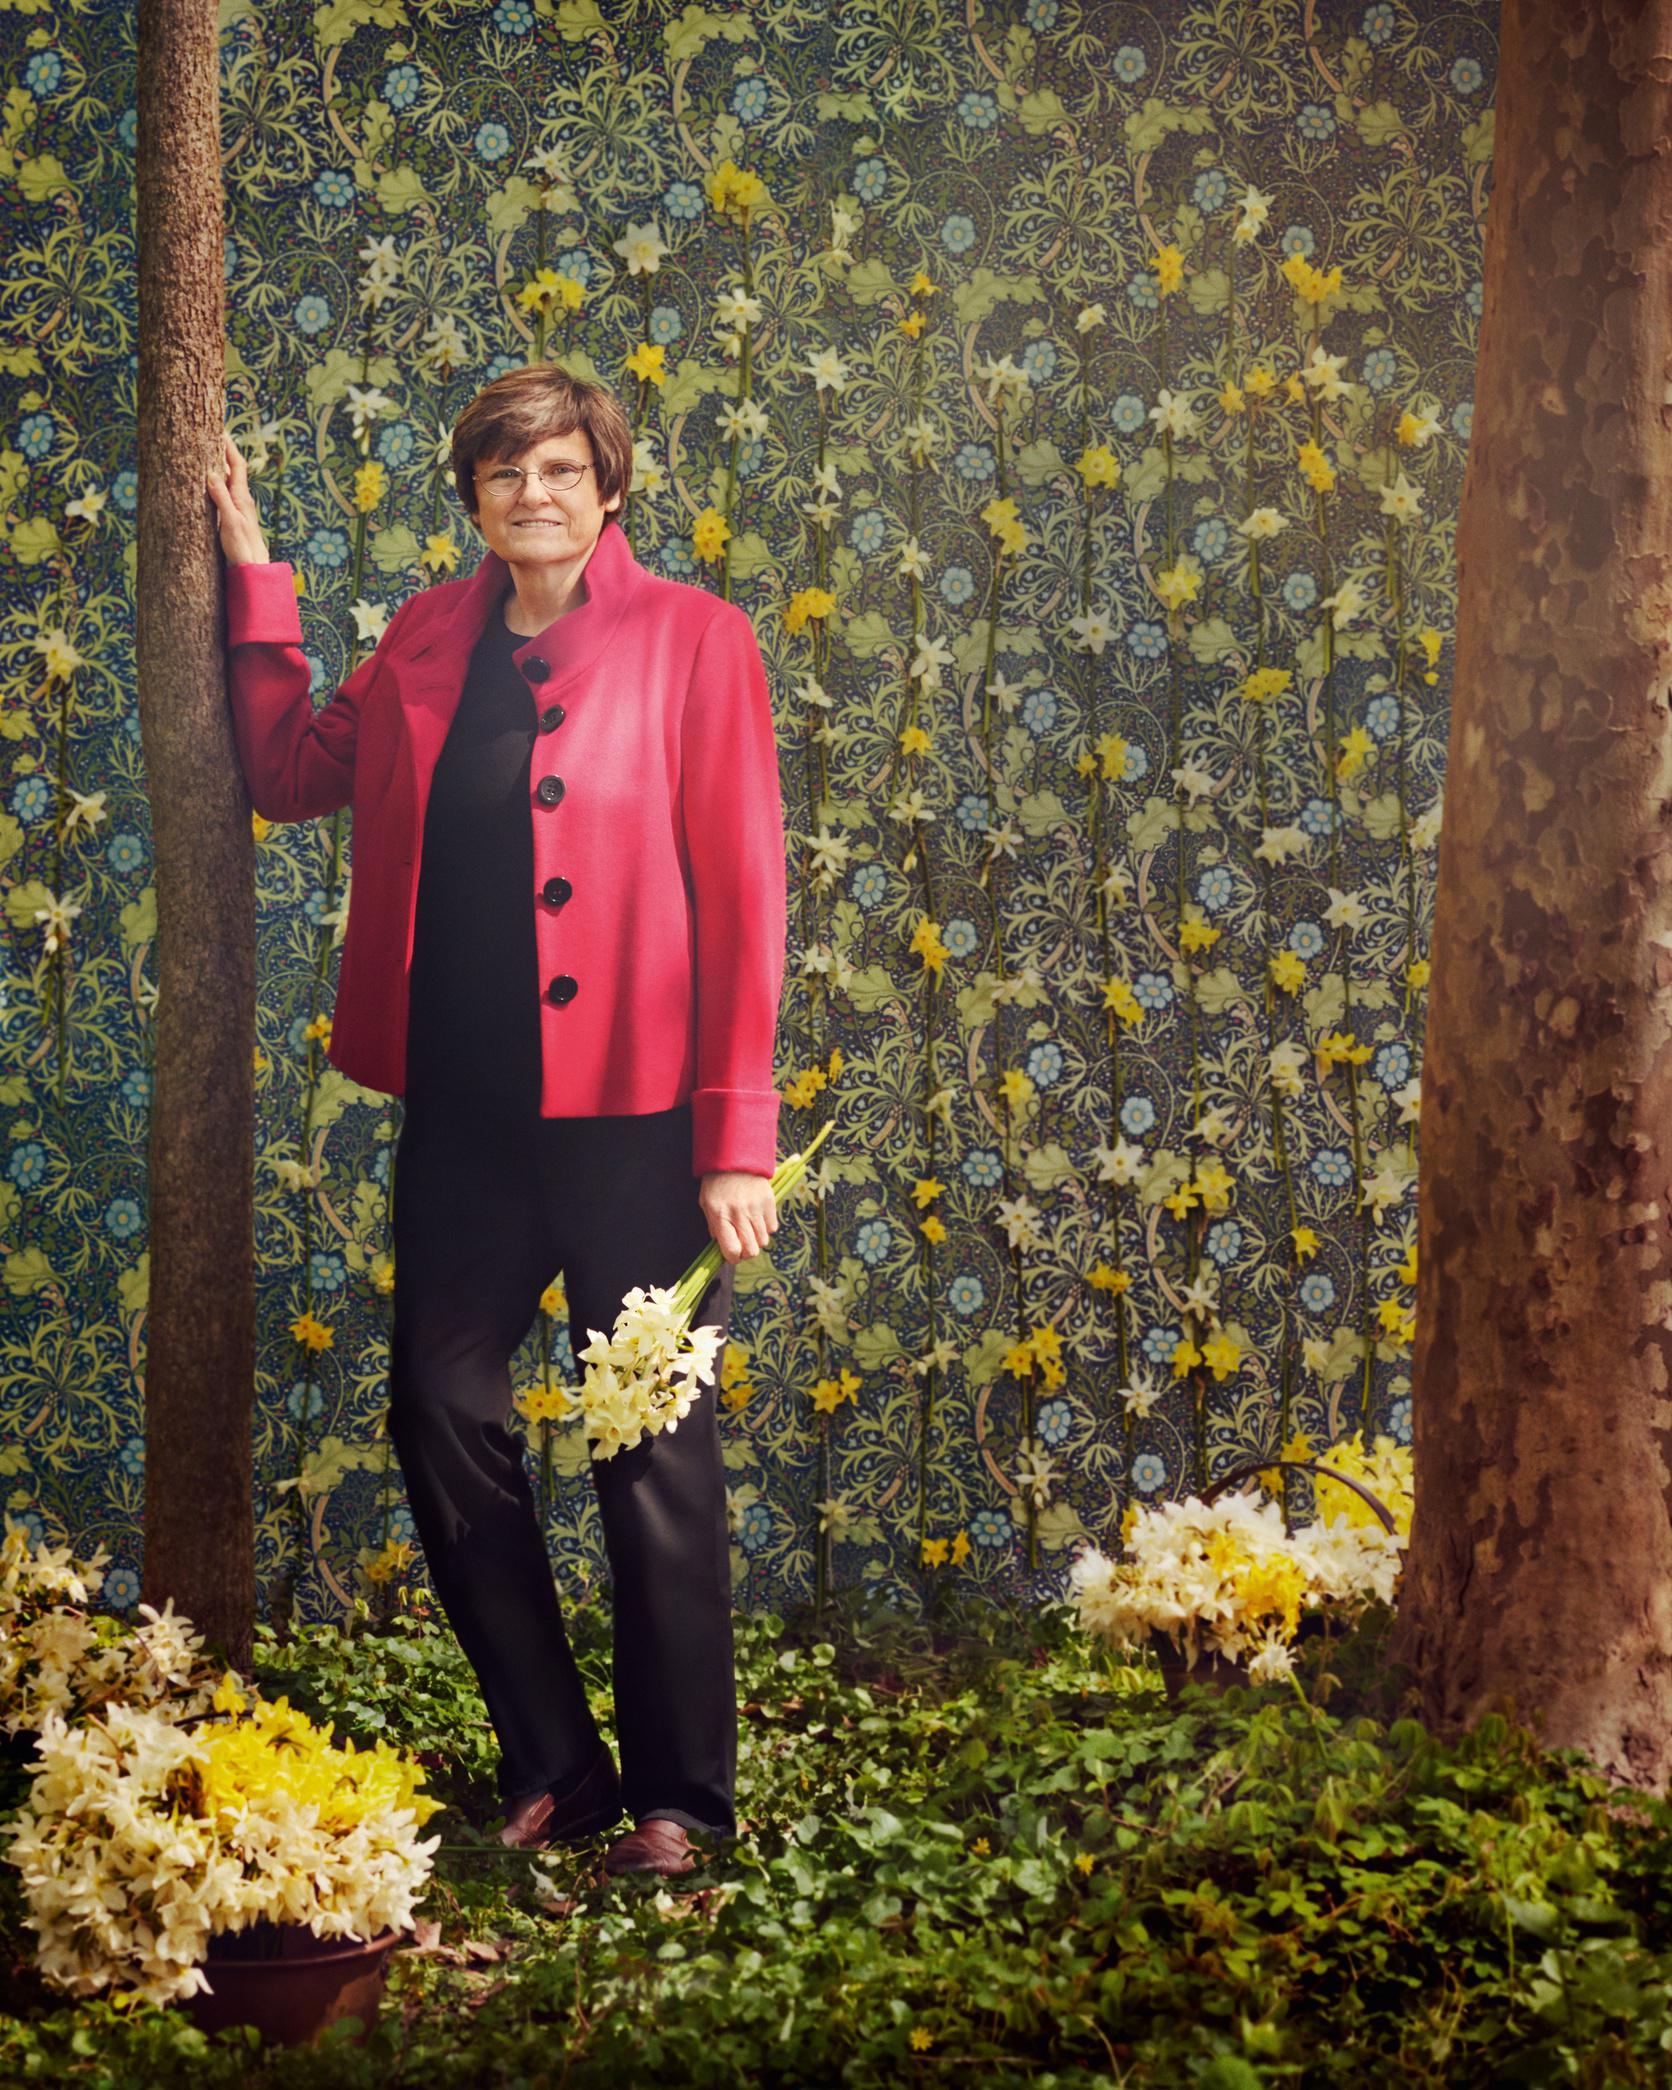 Dr. Kati Kariko, whose pioneering research of mRNA-based therapy, used to develop the Pfizer and Moderna Covid vaccines, is amidst by a shock of white tulips from her native Hungary.